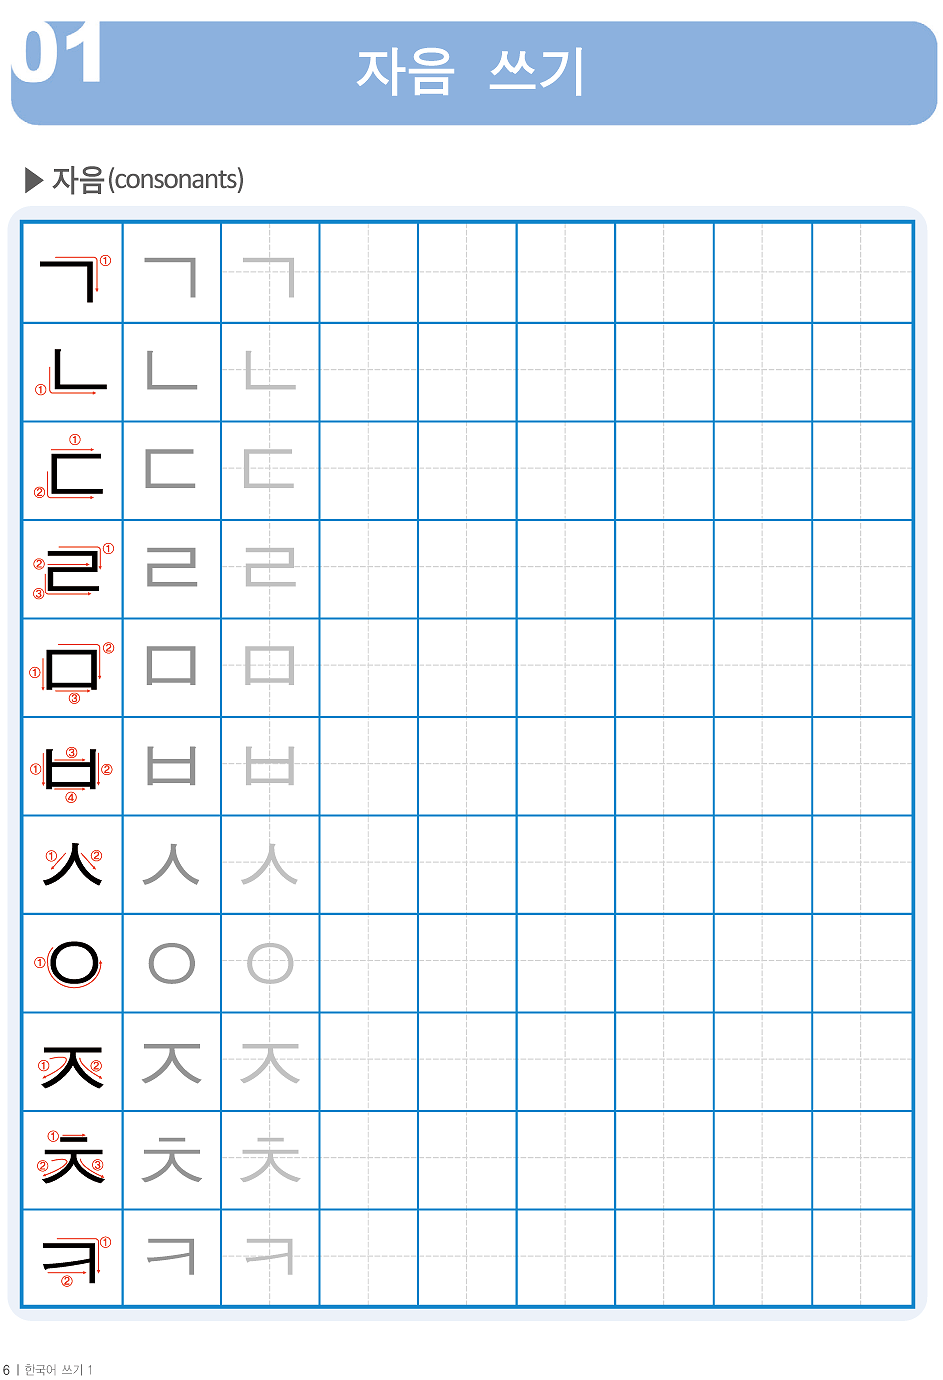 A Fresh New Start (Hangul Handwriting Practice (ud55cuae00 uc4f0uae30 uc5f0uc2b5 ...